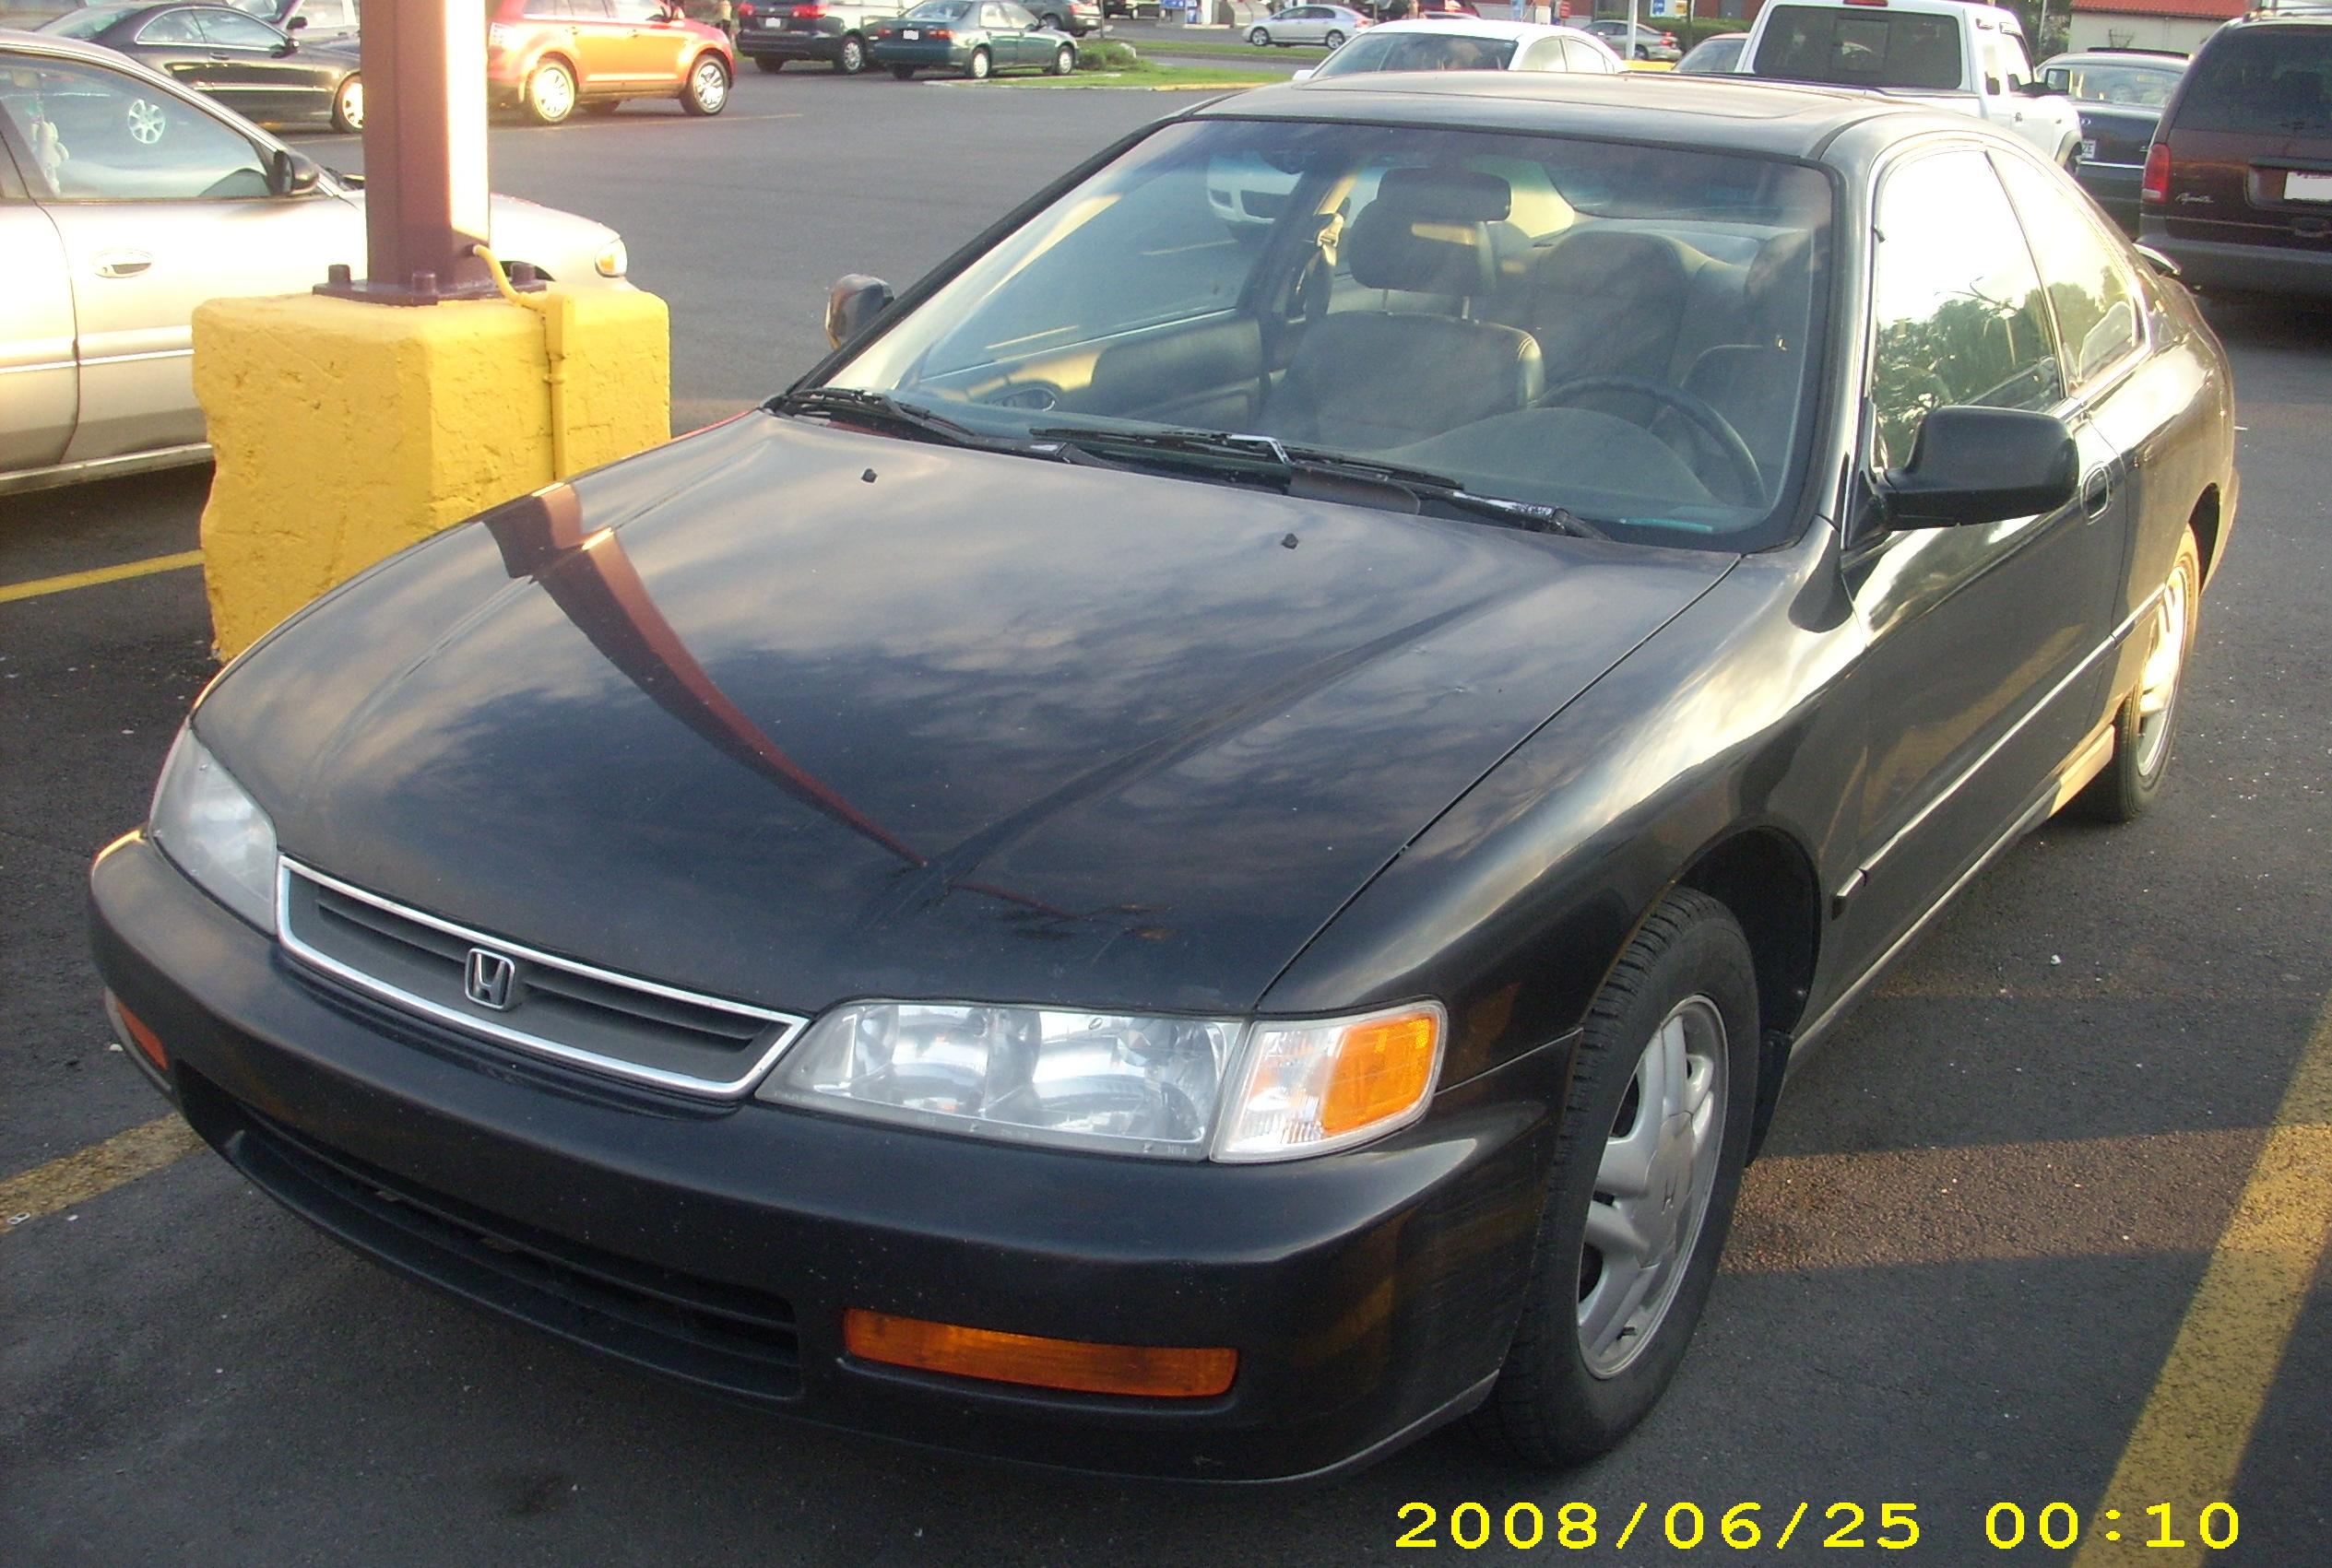 File:1996 97 Honda Accord Coupe.JPG